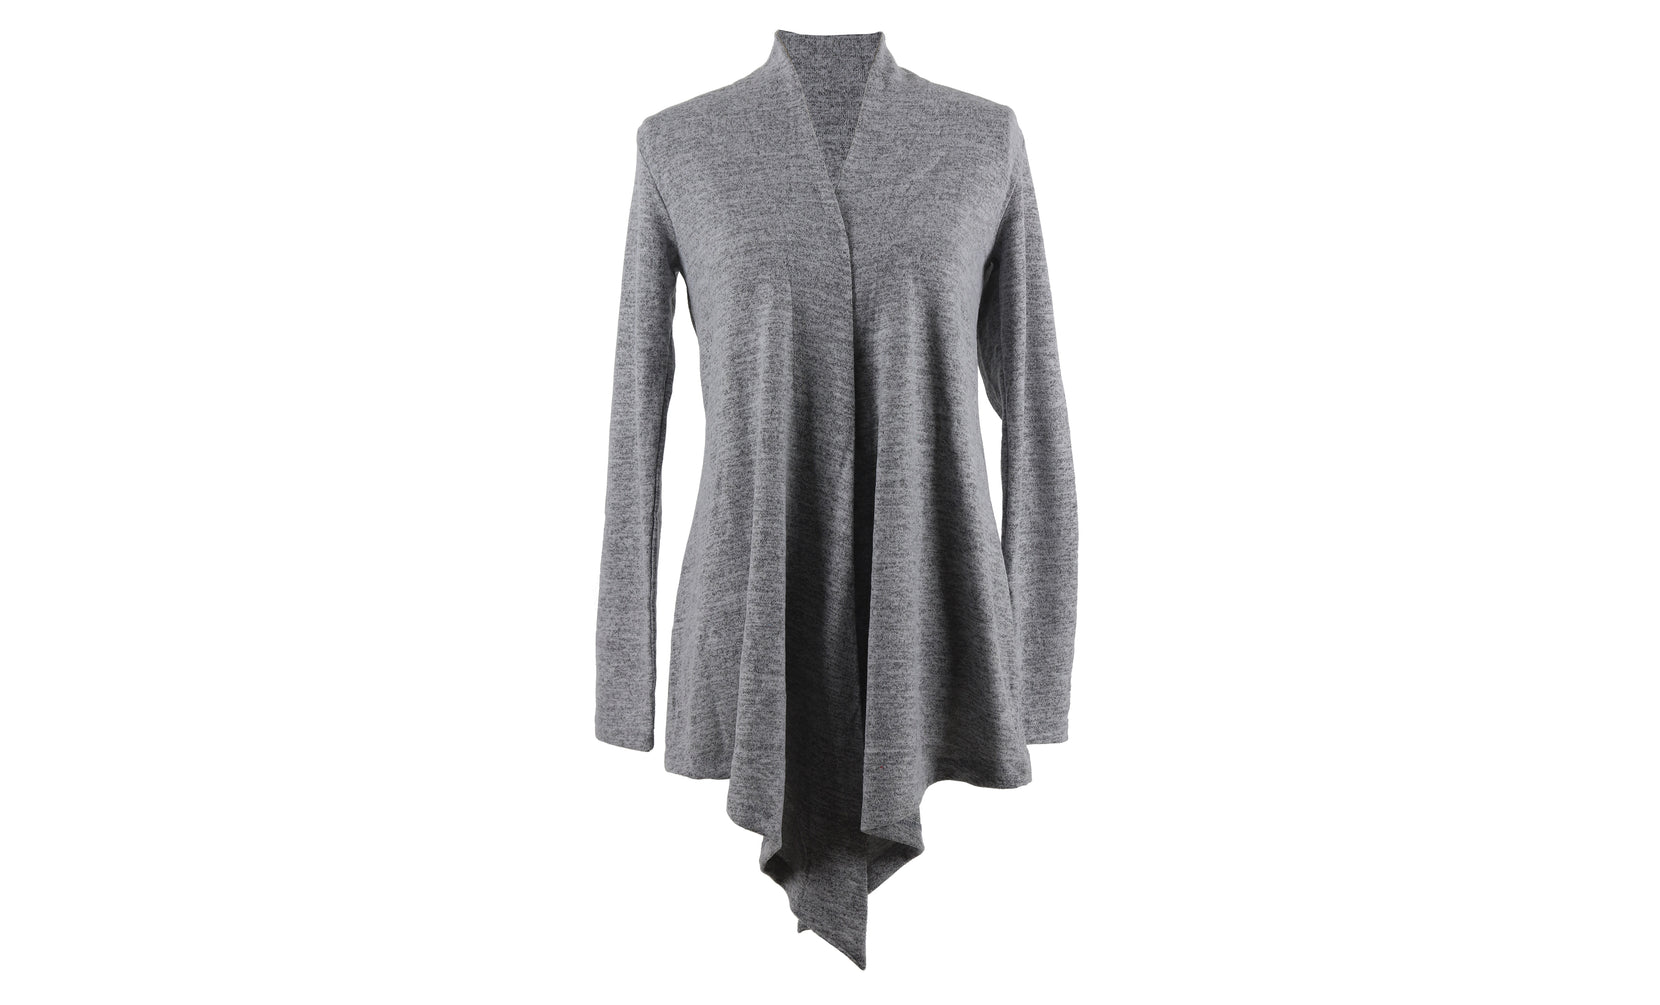 The Flyaway Cardigan